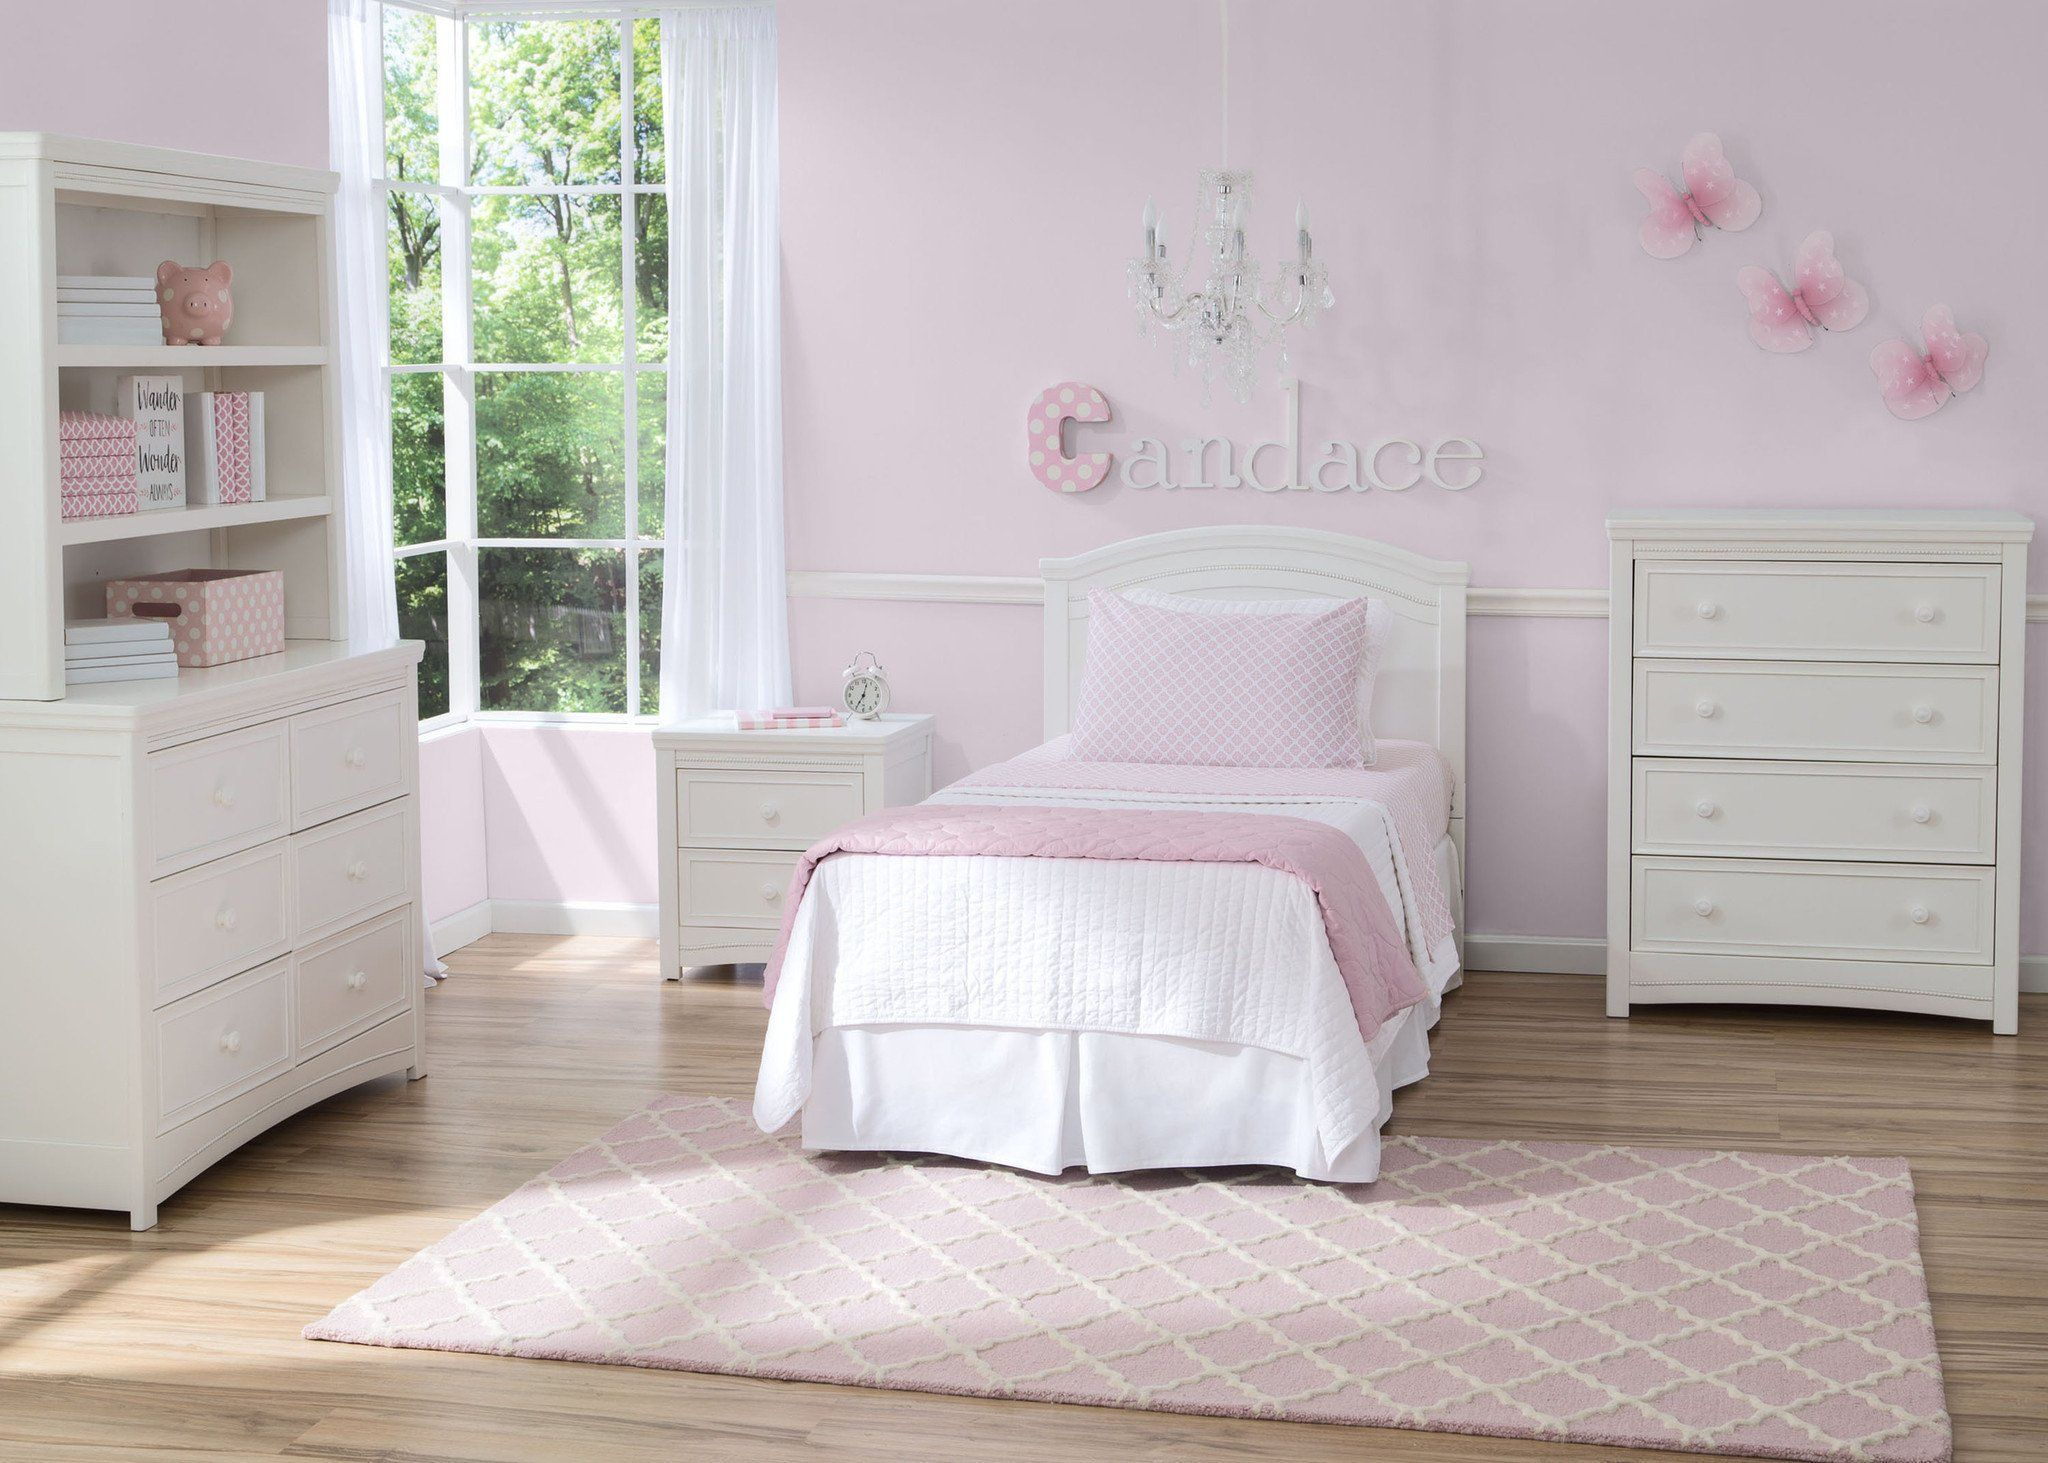 Delta Children White Ambiance (108) Lindsey Twin HeadBoard, Room View, a1a